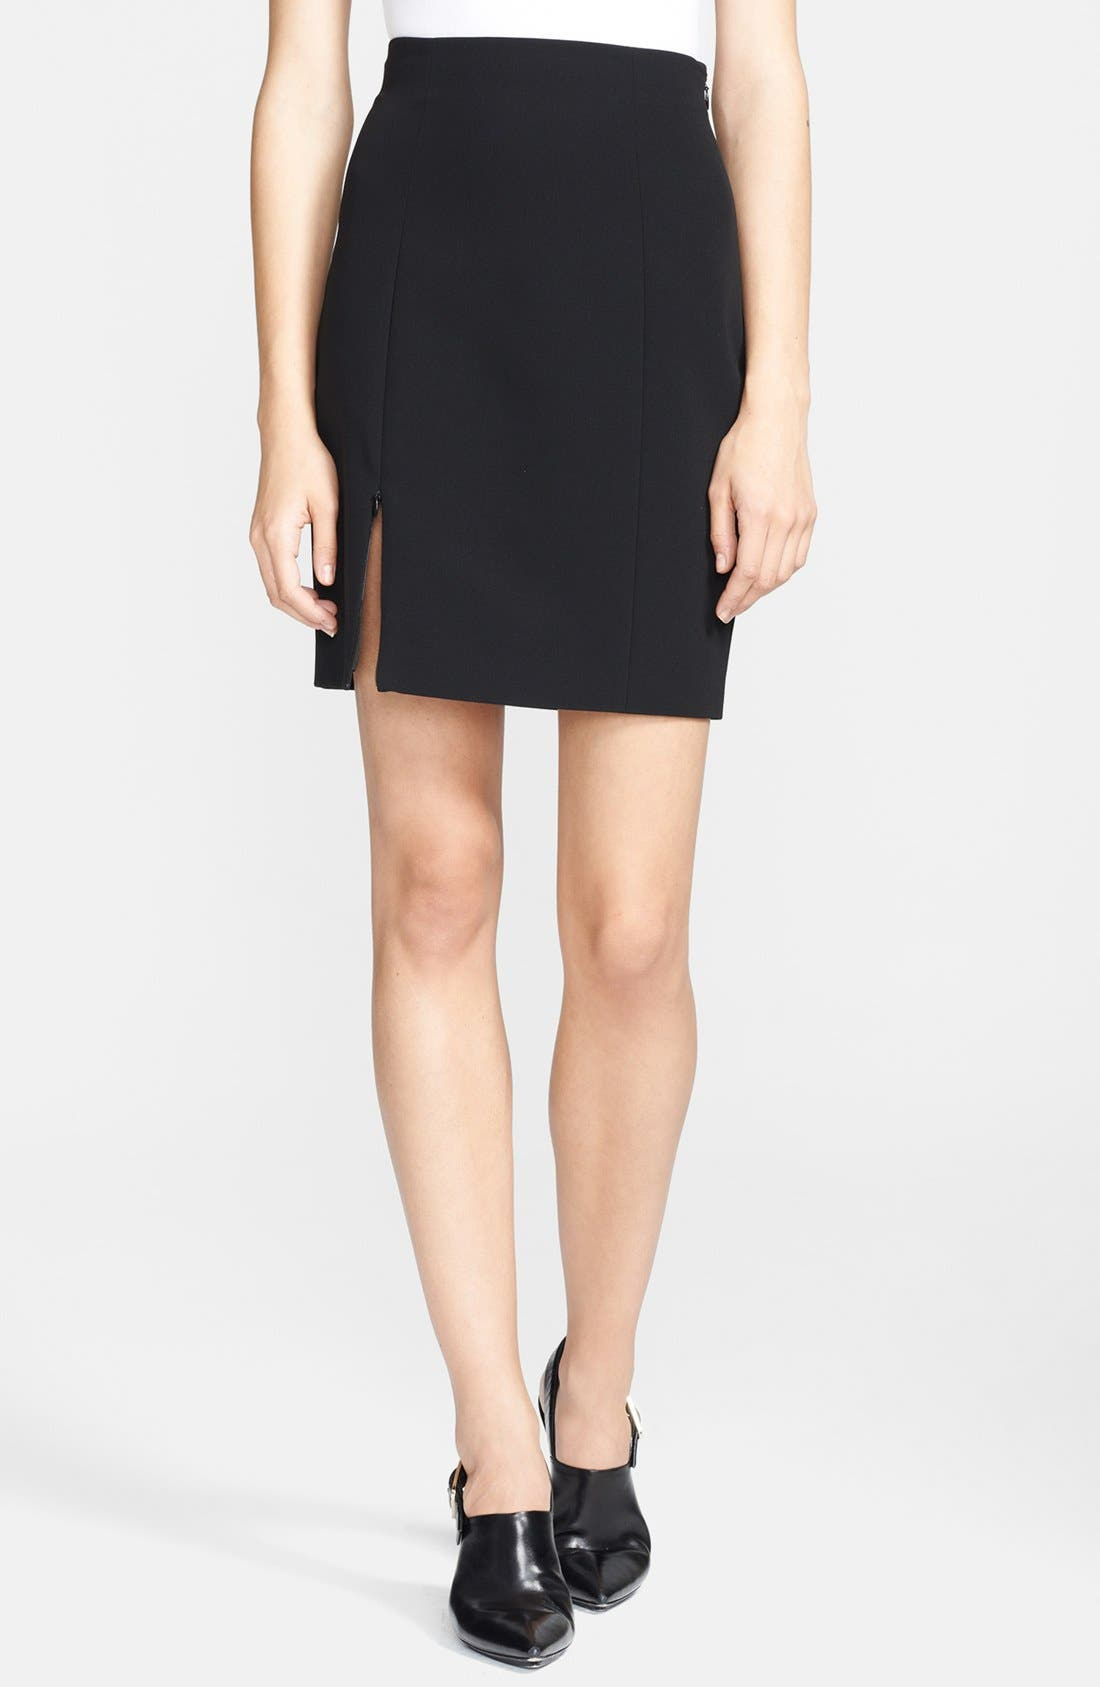 Alternate Image 1 Selected - T by Alexander Wang Techno Pencil Skirt